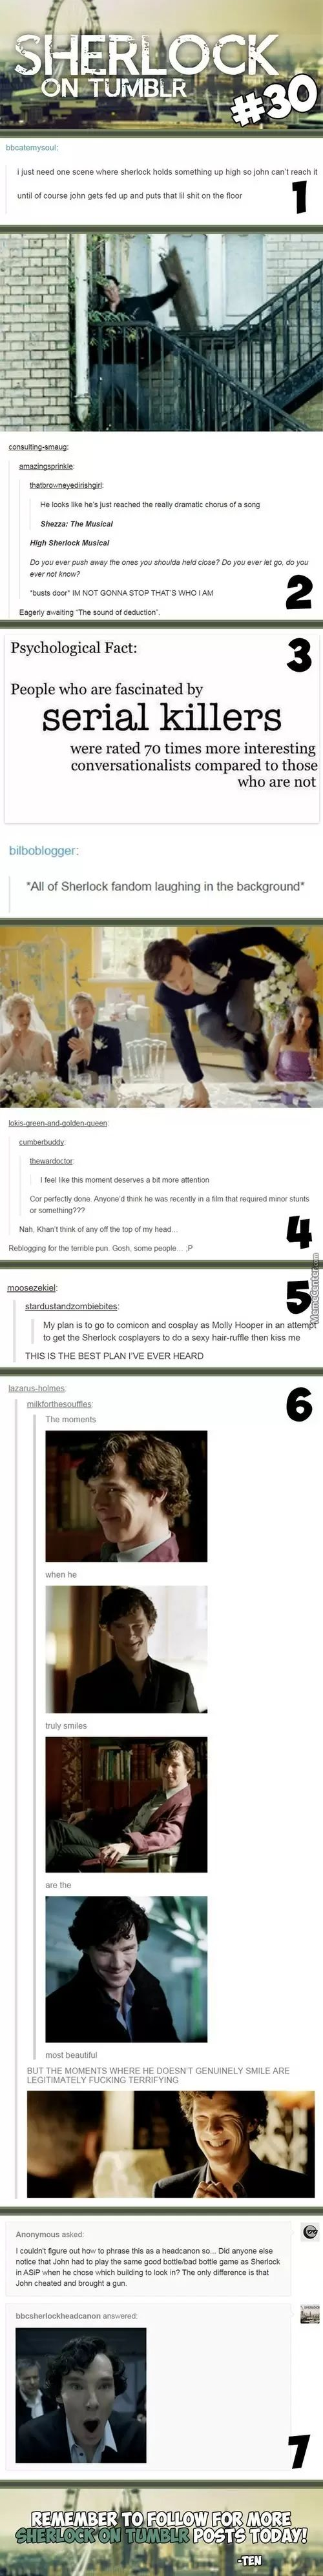 Sherlock On Tumblr #30